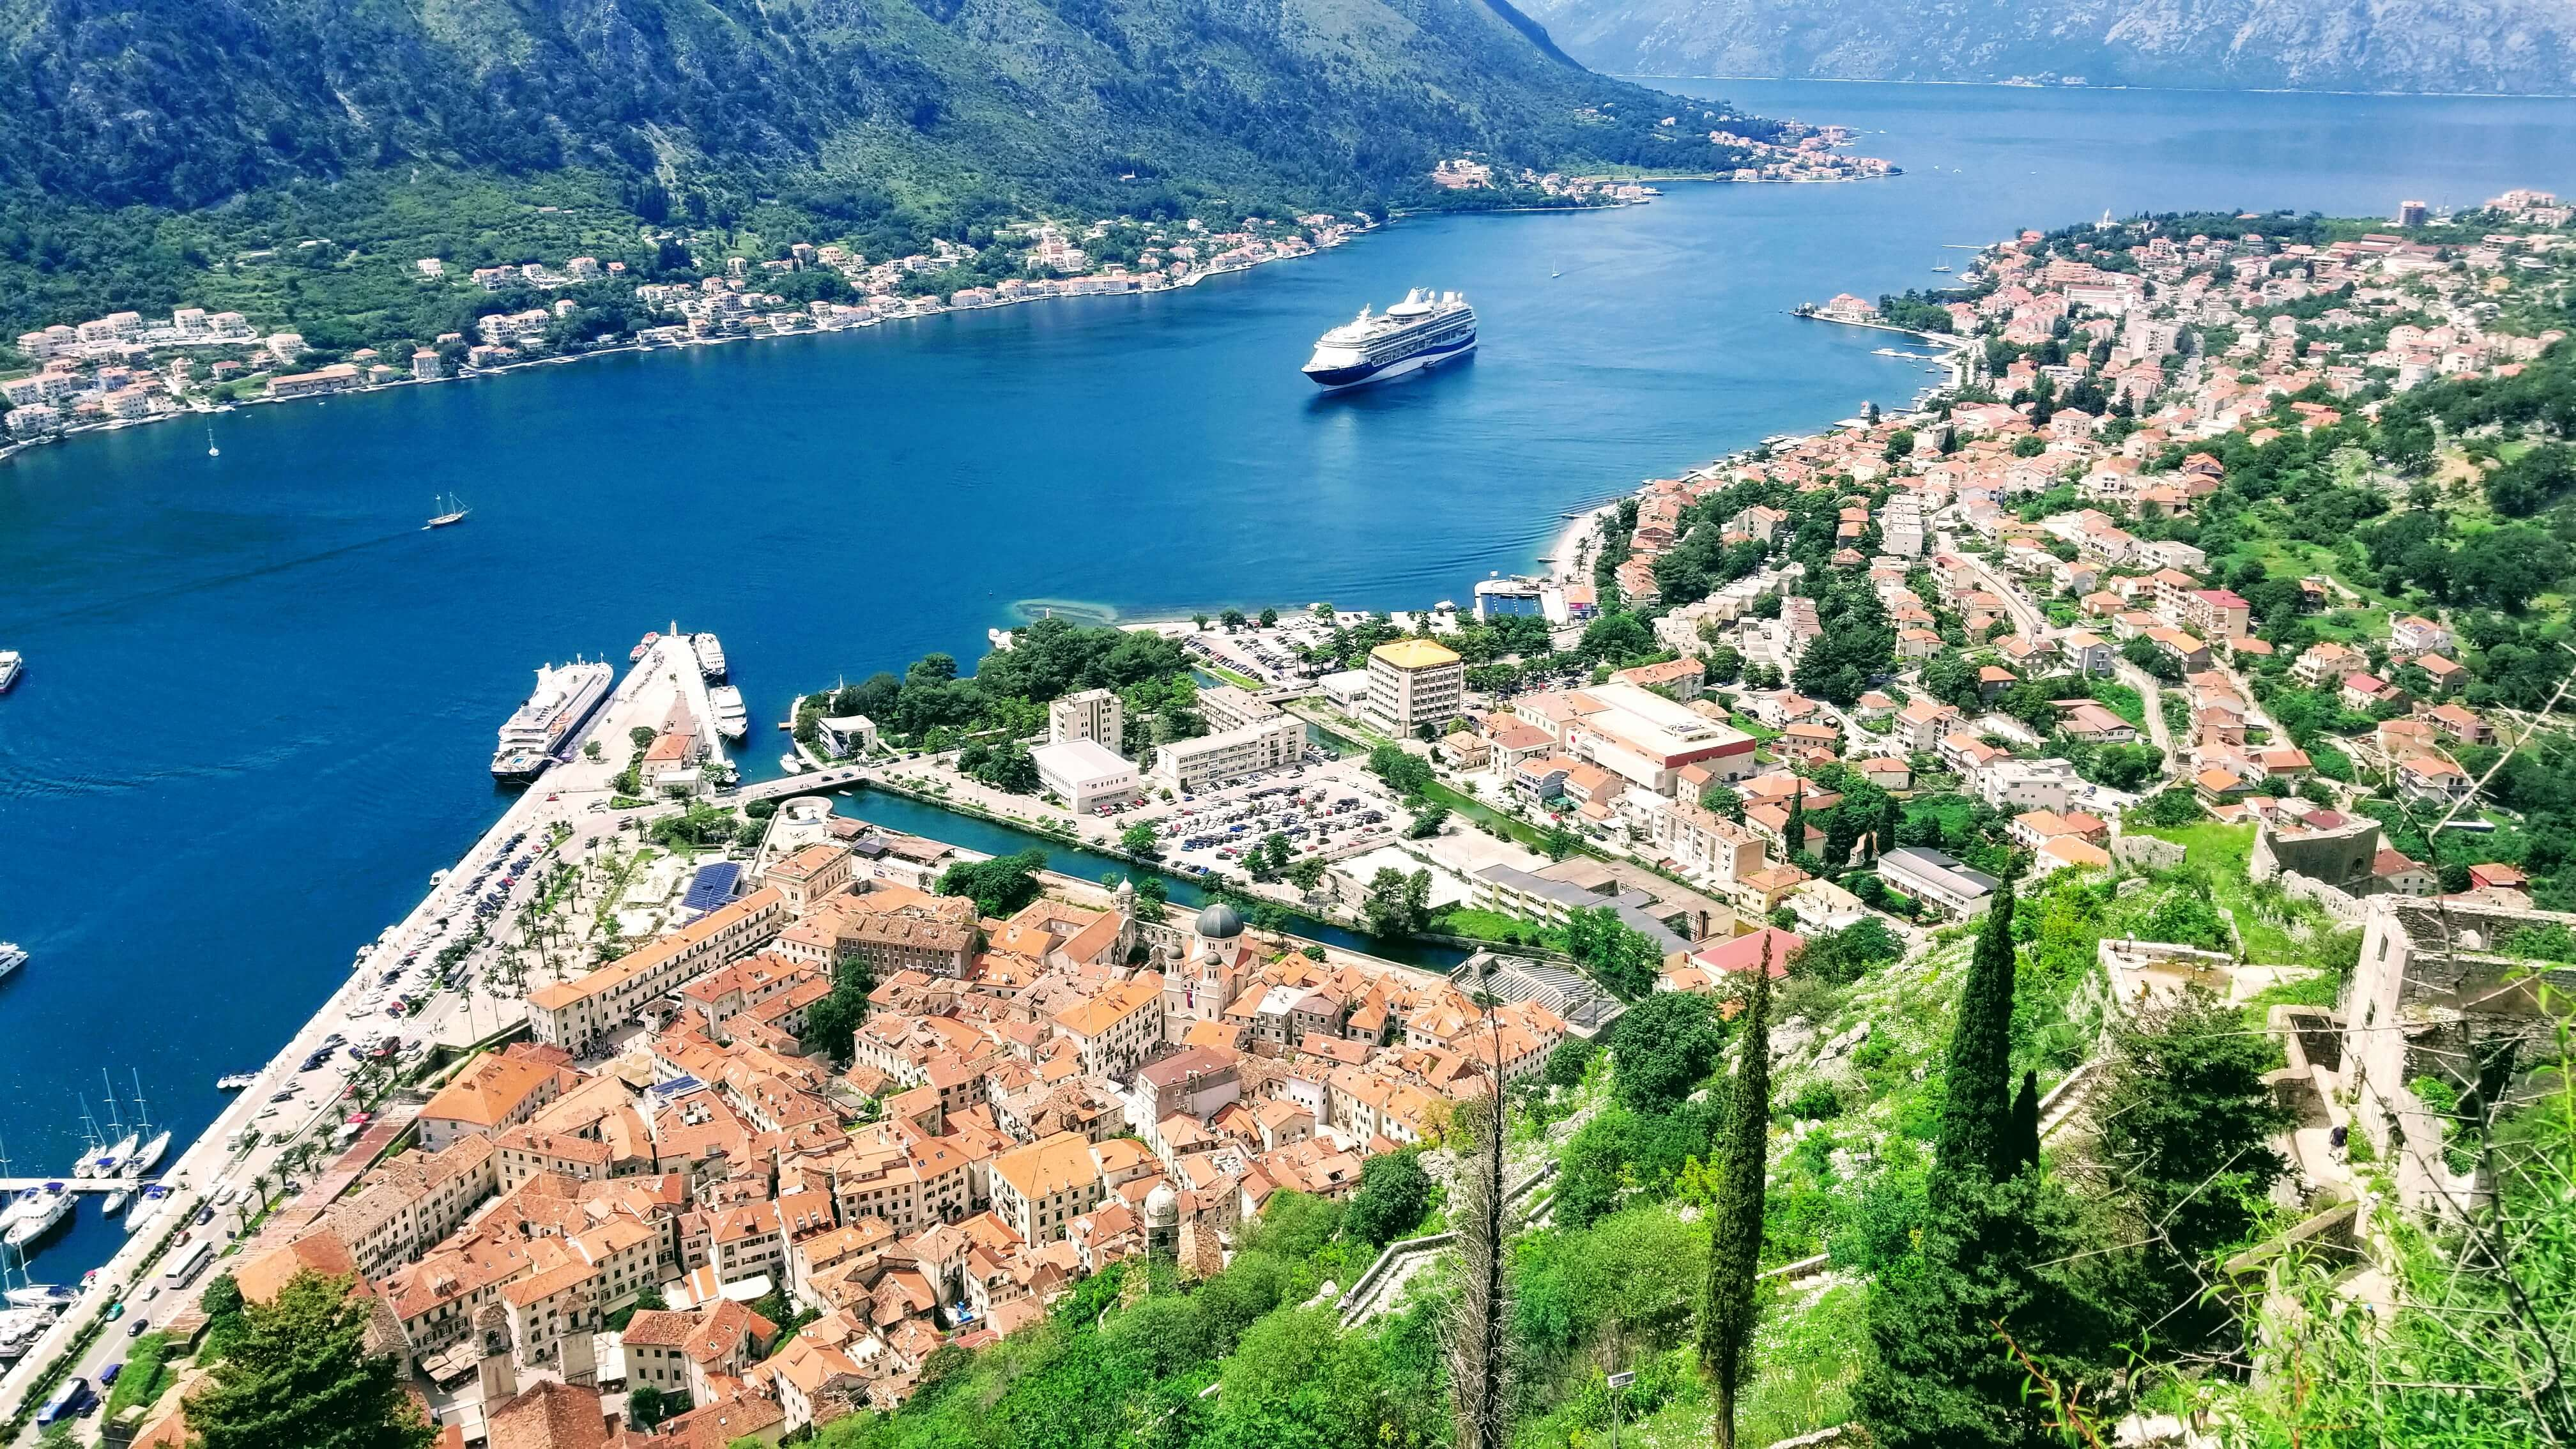 The view of Kotor city from the Fortress.  Kotor the top highlight of Montenegro.